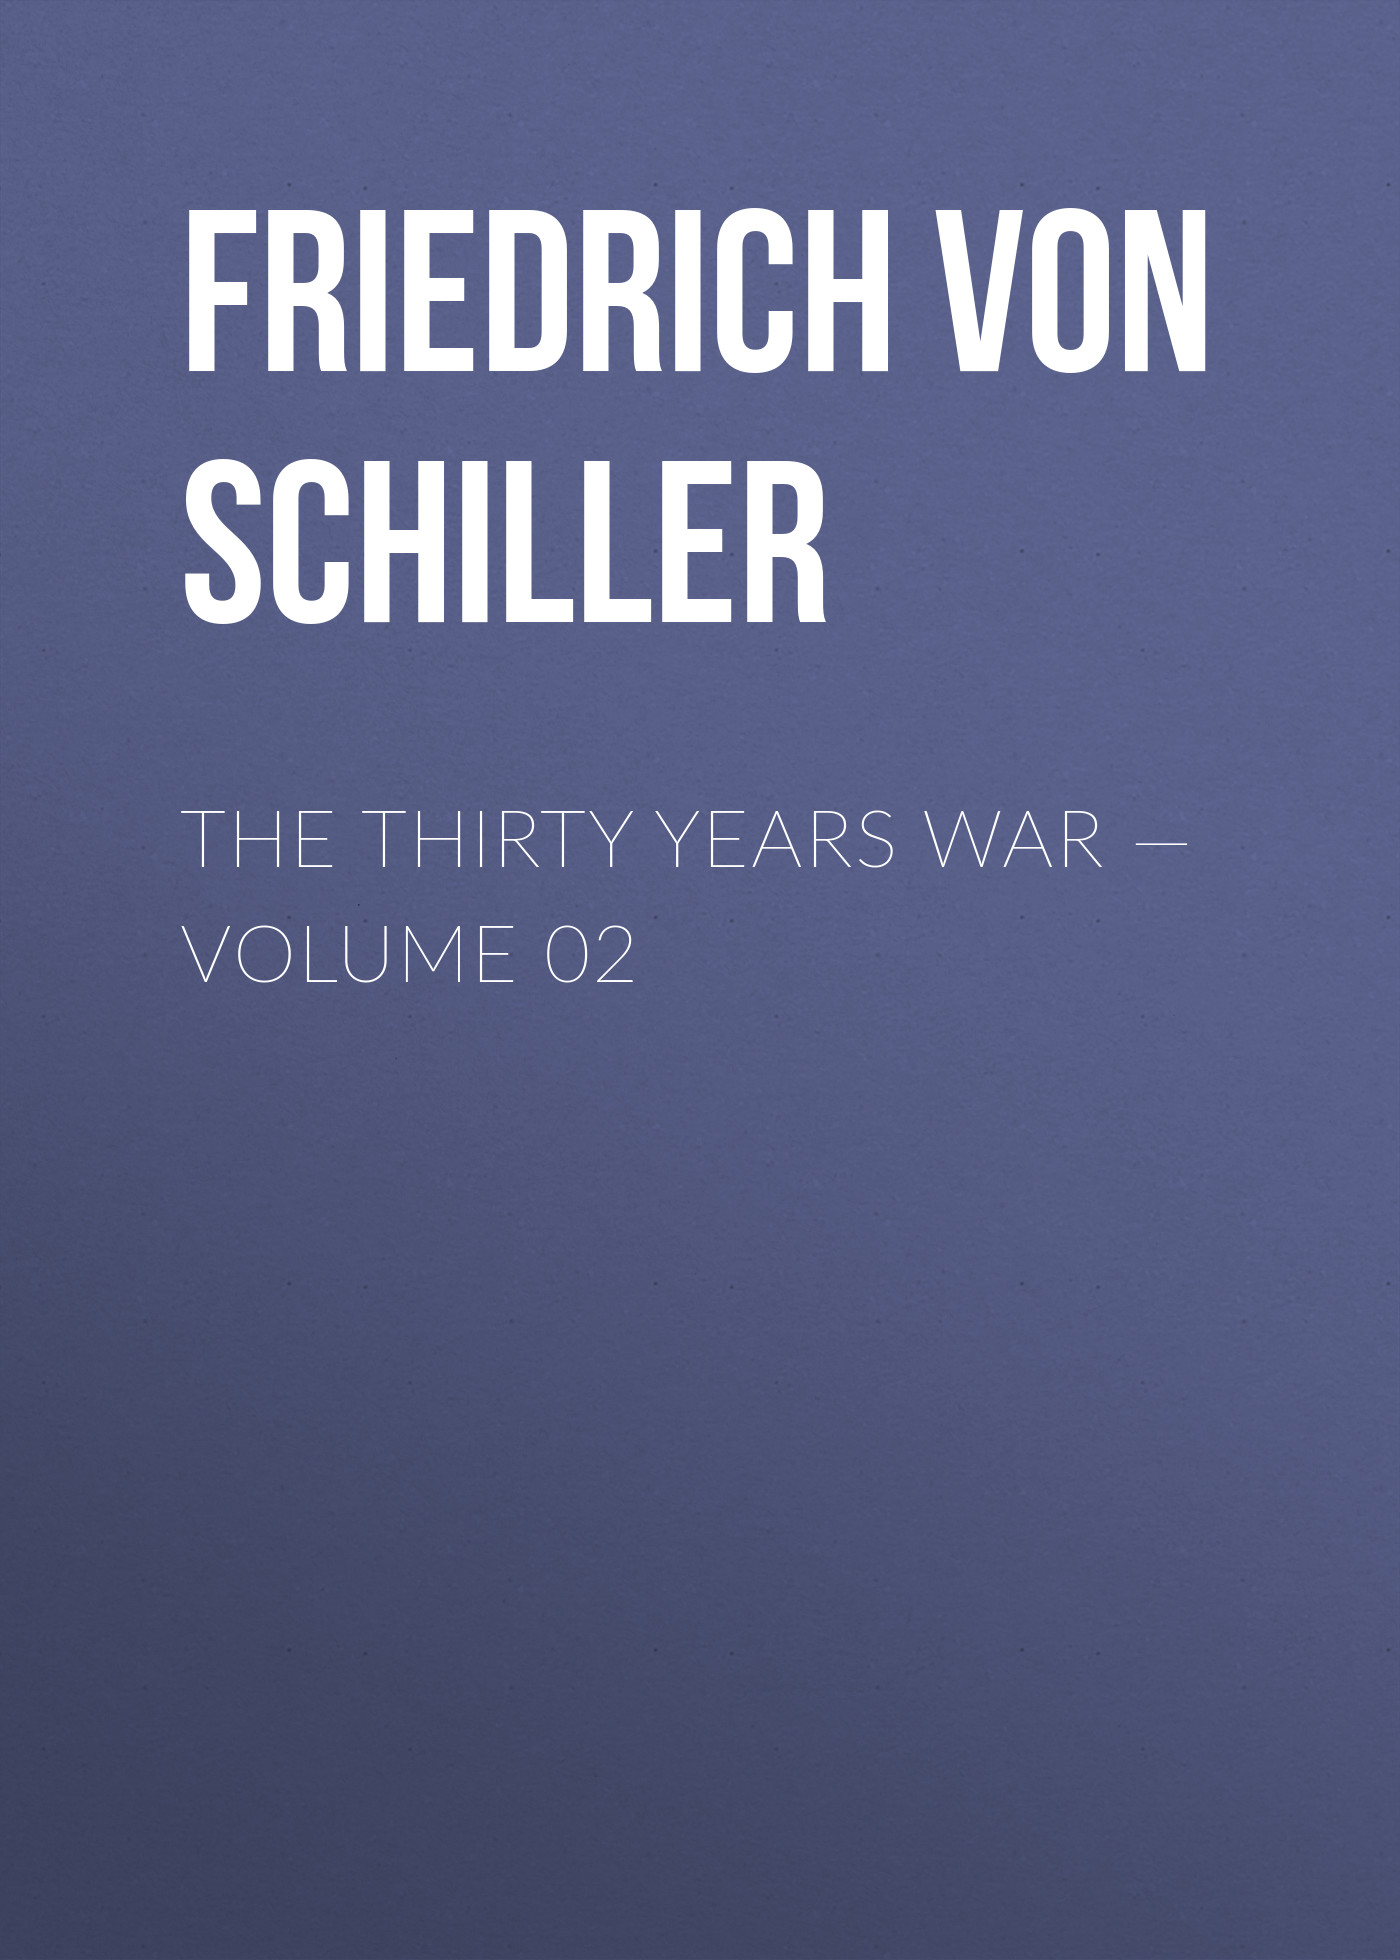 Friedrich von Schiller The Thirty Years War — Volume 02 adriatica часы adriatica 3129 1153q коллекция ladies